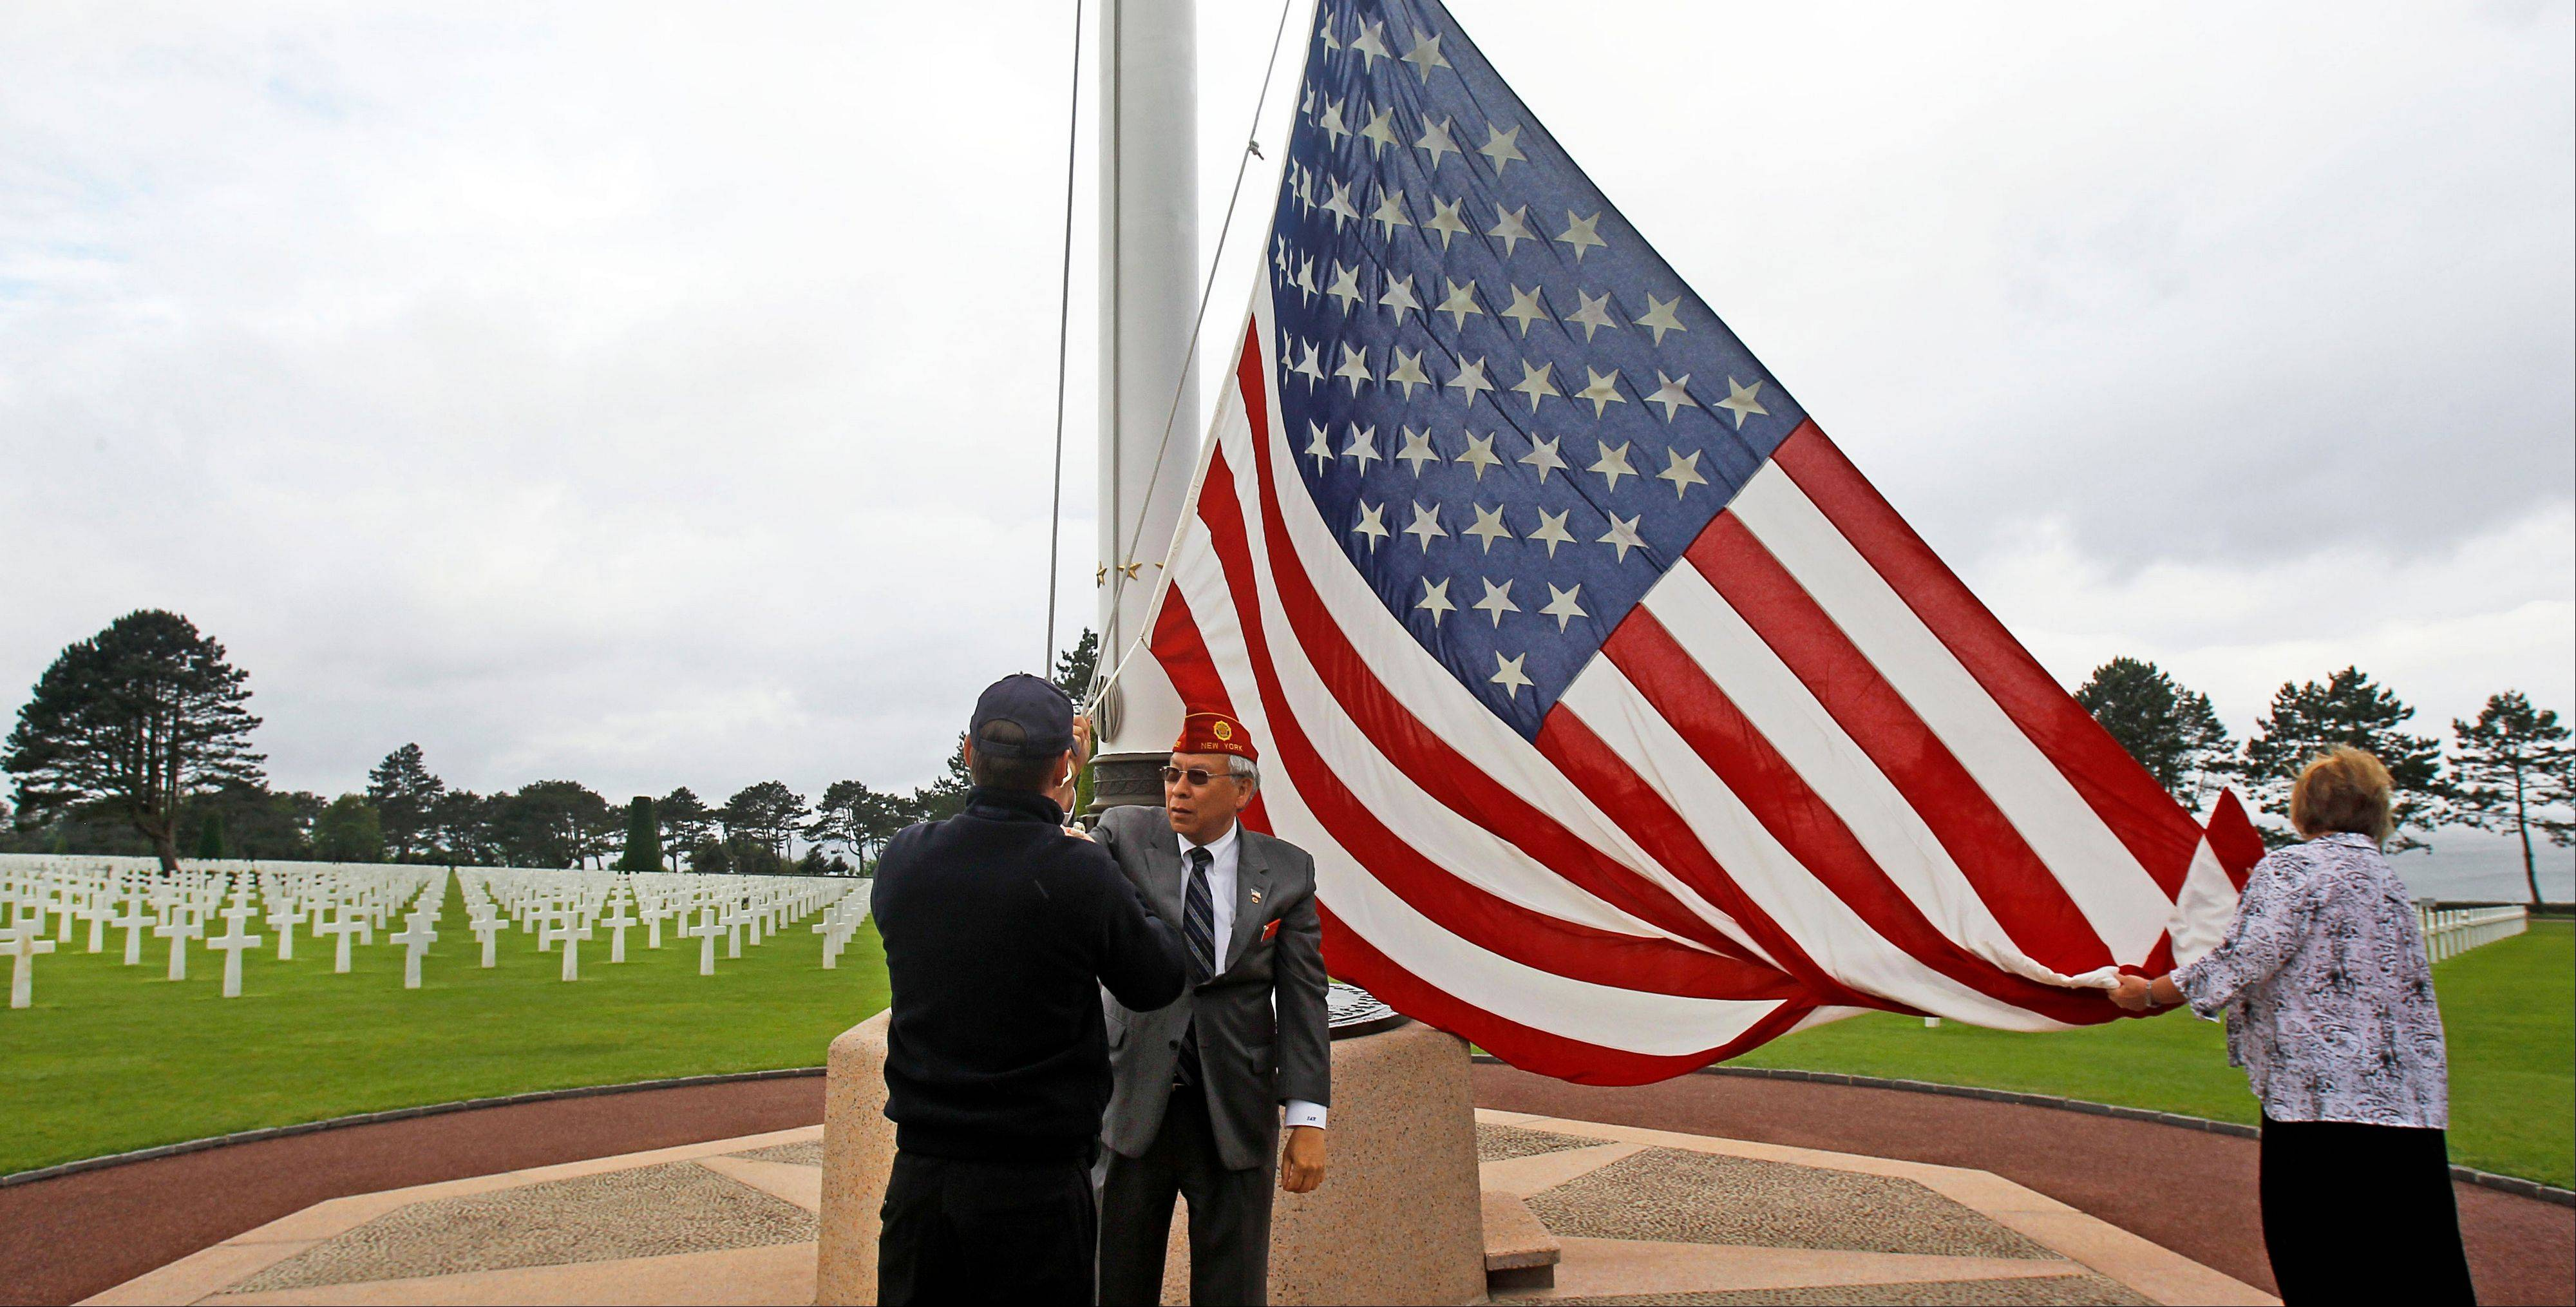 The U.S. flag is being raised at the Colleville American military cemetery, in Colleville sur Mer, western France, Wednesday June 6, 2012, before the start of the ceremony commemorating the 68th anniversary of the D-Day.